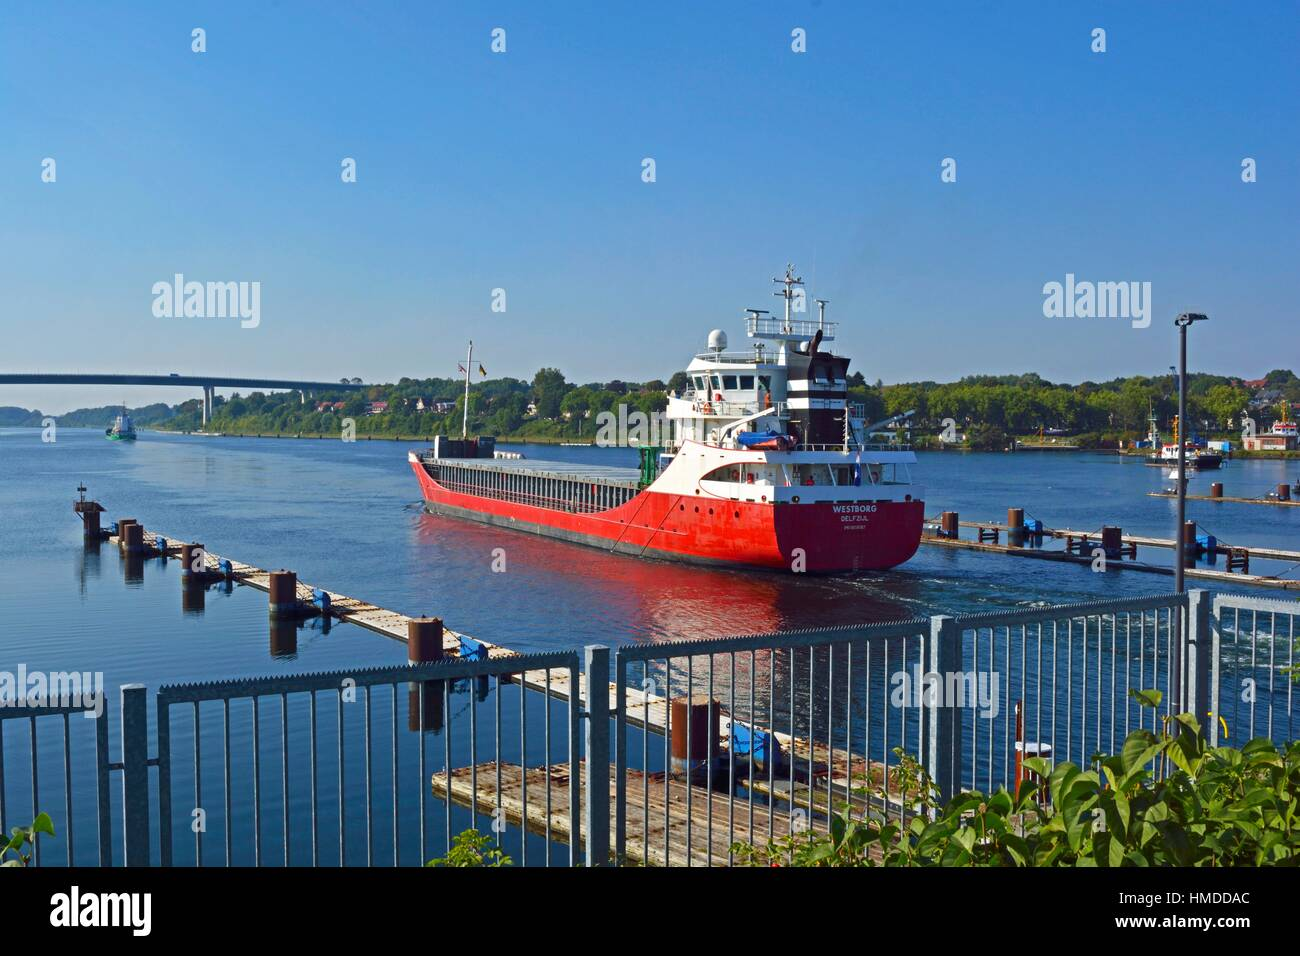 At the entrance of the Kiel Canal at Kiel-Holtenau, Schleswig-Holstein, Germany. - Stock Image